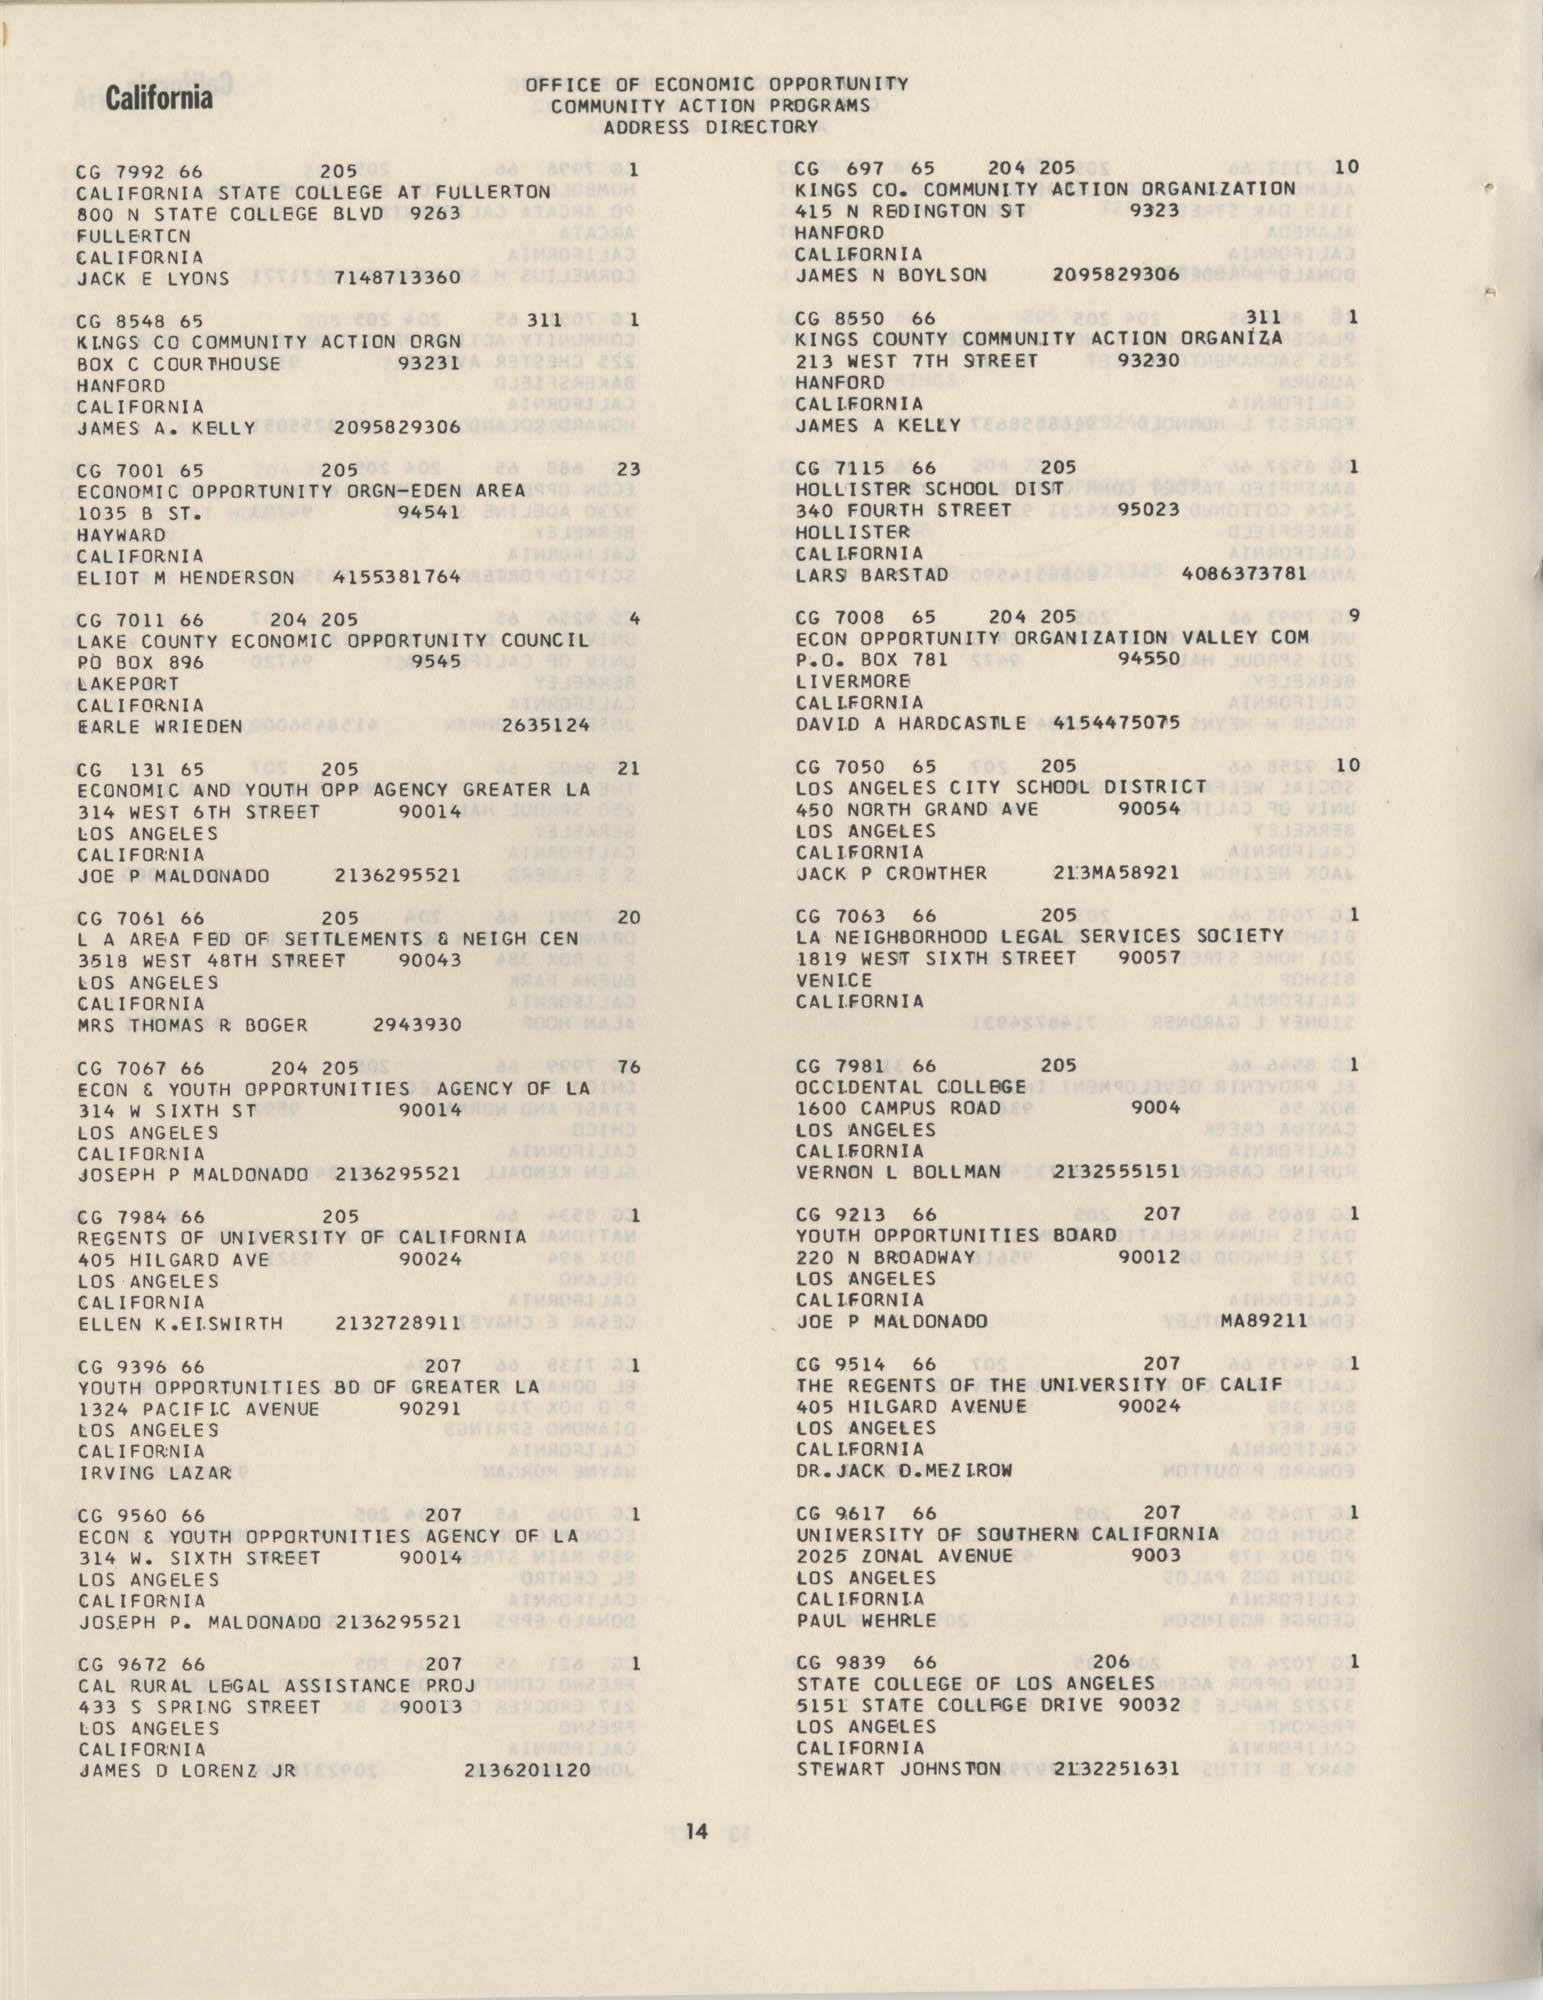 Community Action Programs Directory, June 15, 1966, Page 14